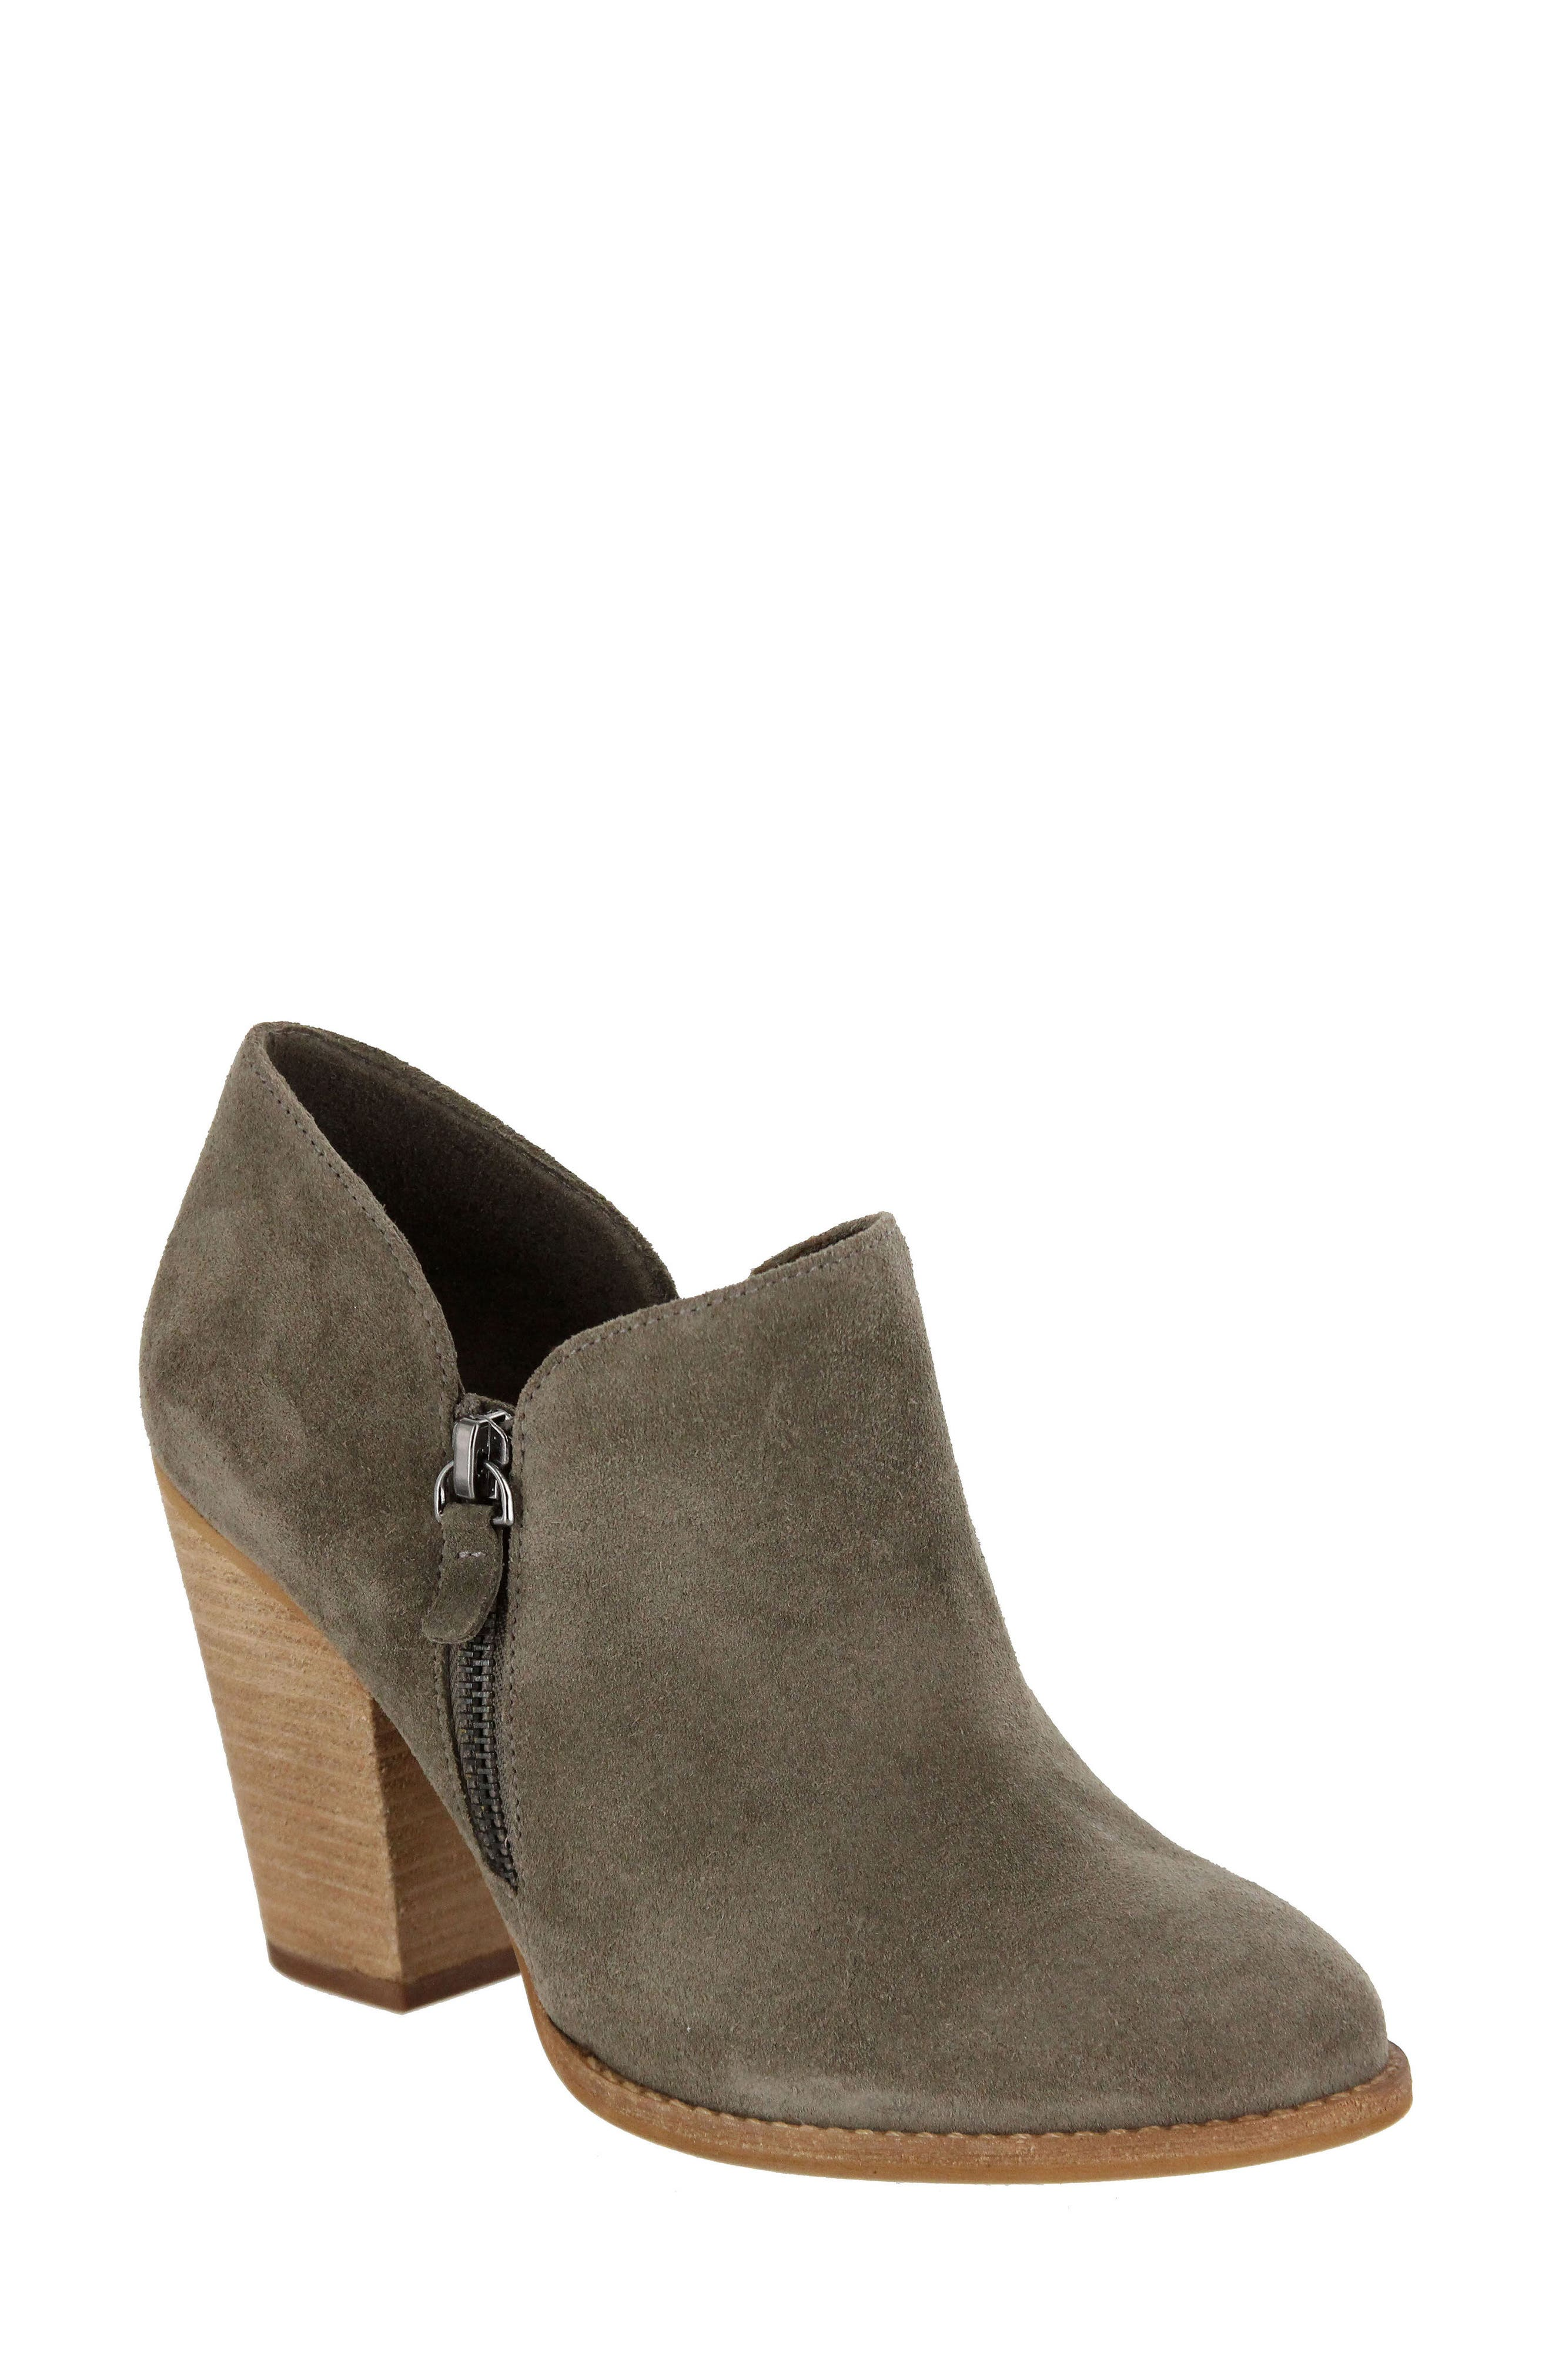 Frisco Bootie,                         Main,                         color, Taupe